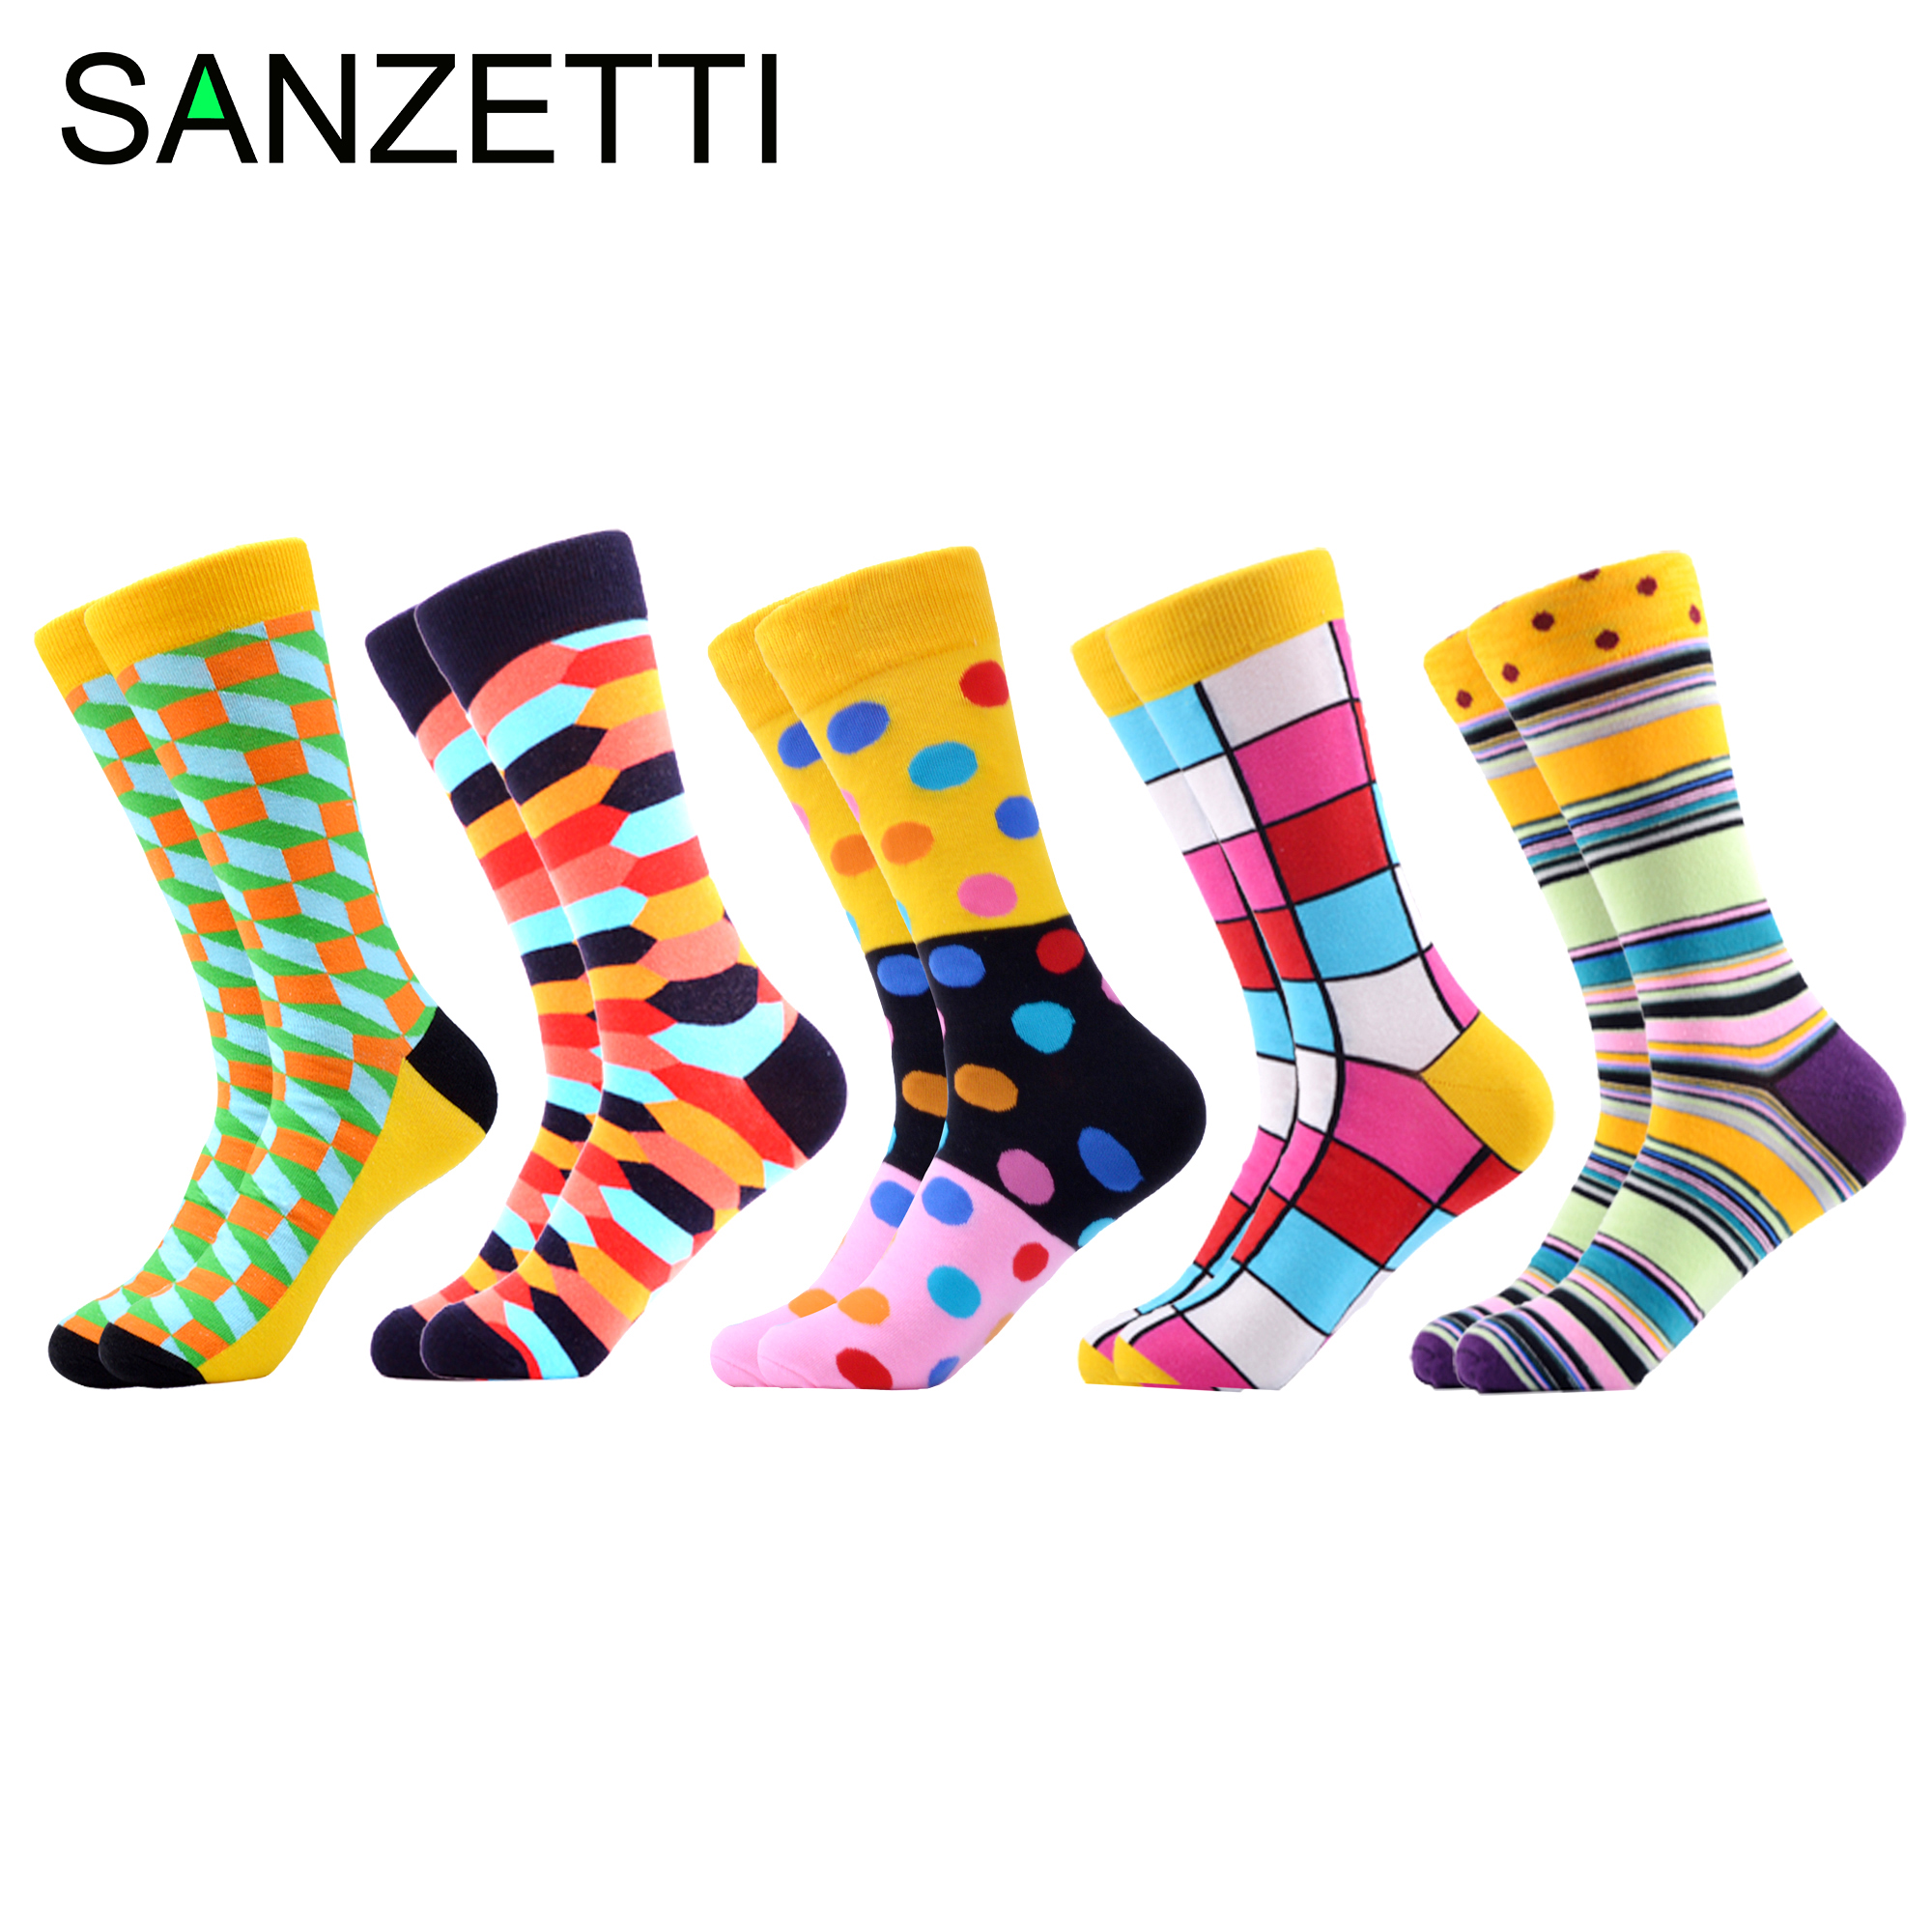 SANZETTI 5 Pairs/Lot 2020 Newest Men's Colorful Comfortable Causal Dress Skateboard Socks Geometry Pattern Funny Wedding Socks